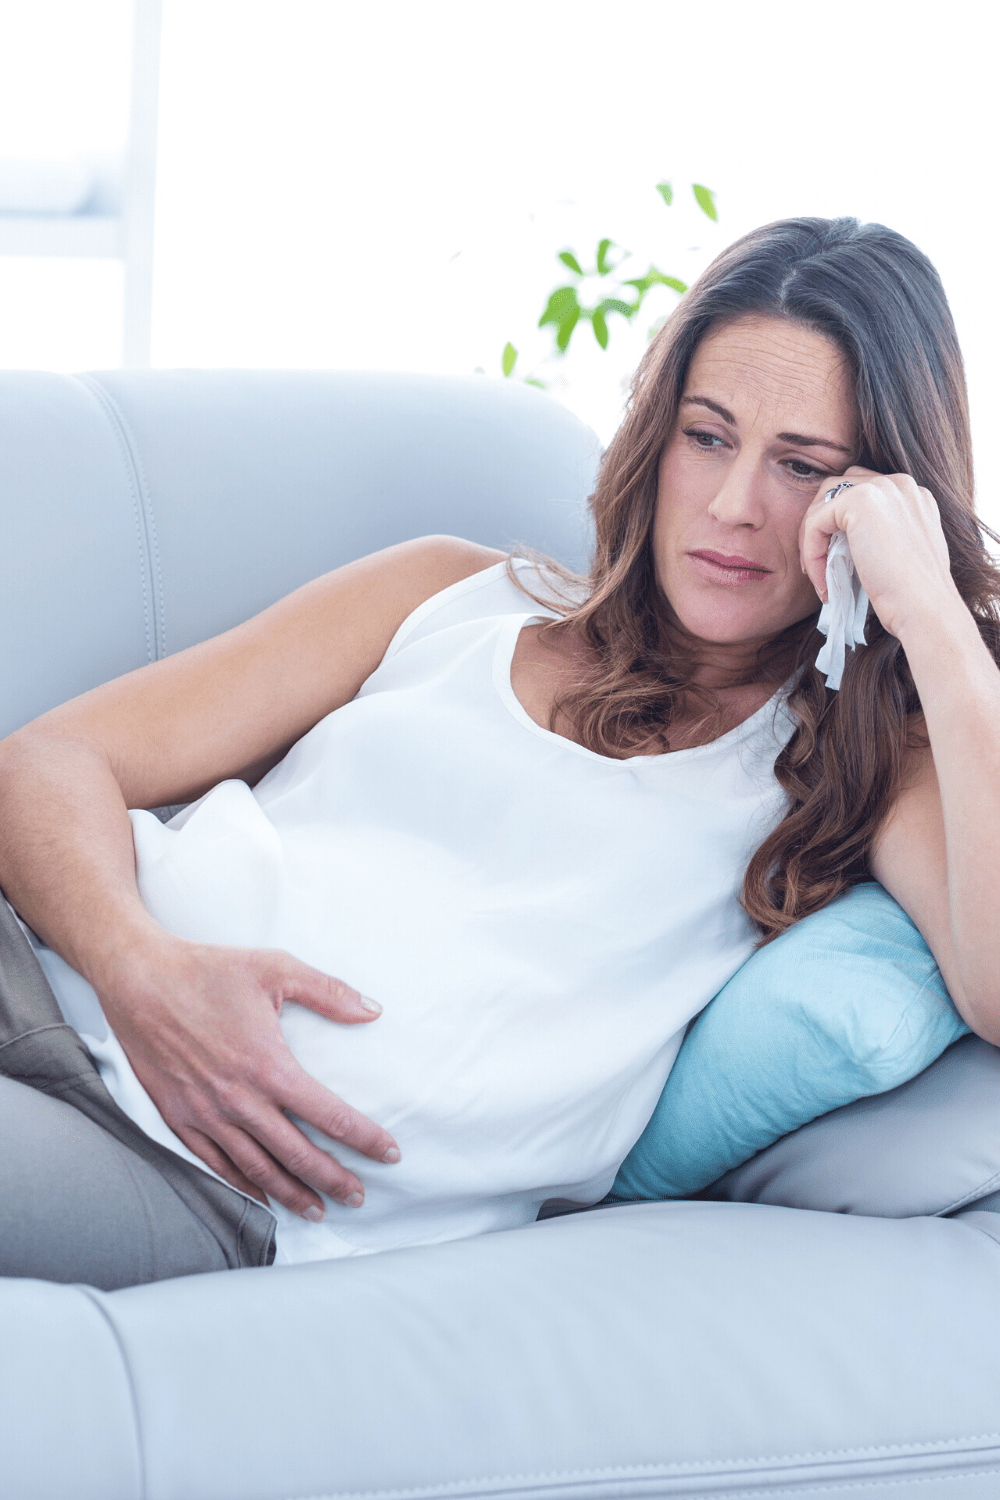 Feelings and Coping After Early Miscarriage or Chemical Pregnancy